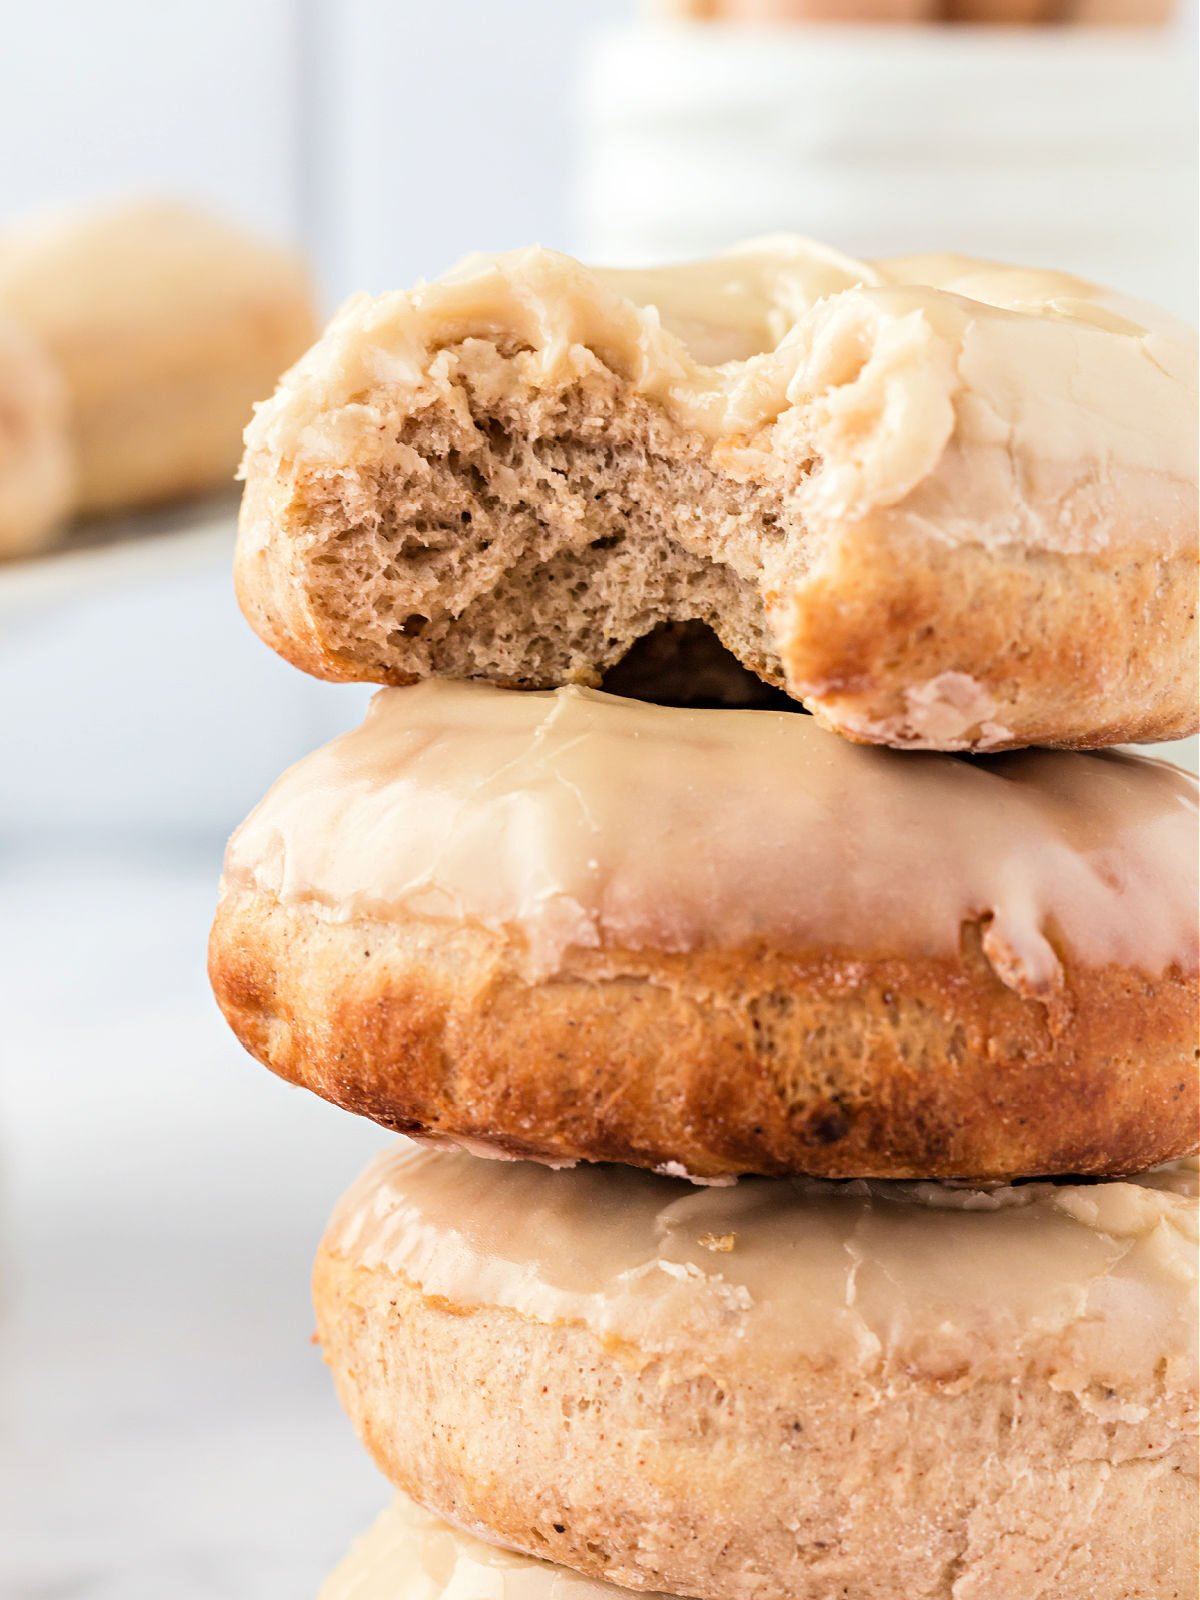 Stack of glazed maple doughnuts with top doughnut missing a bite.